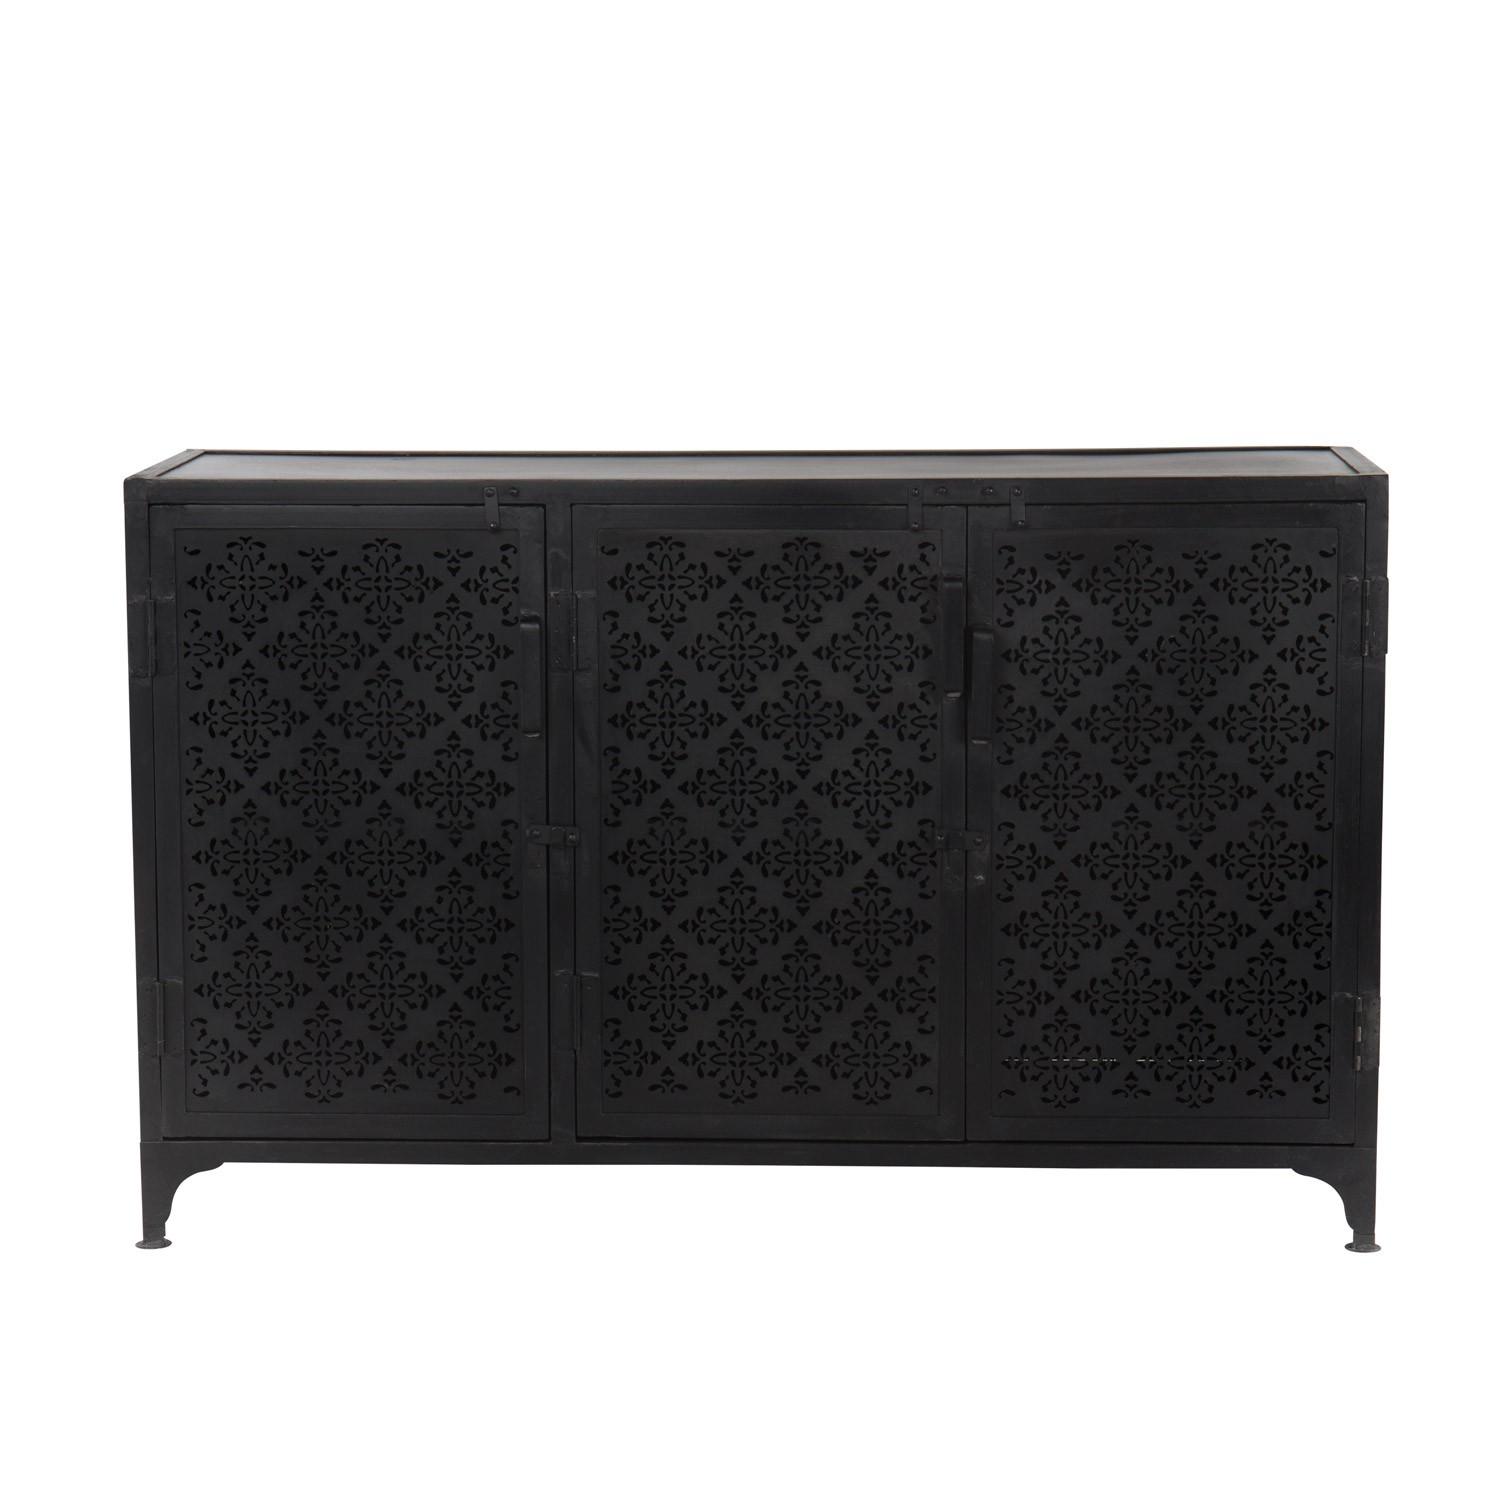 Pers Sideboard